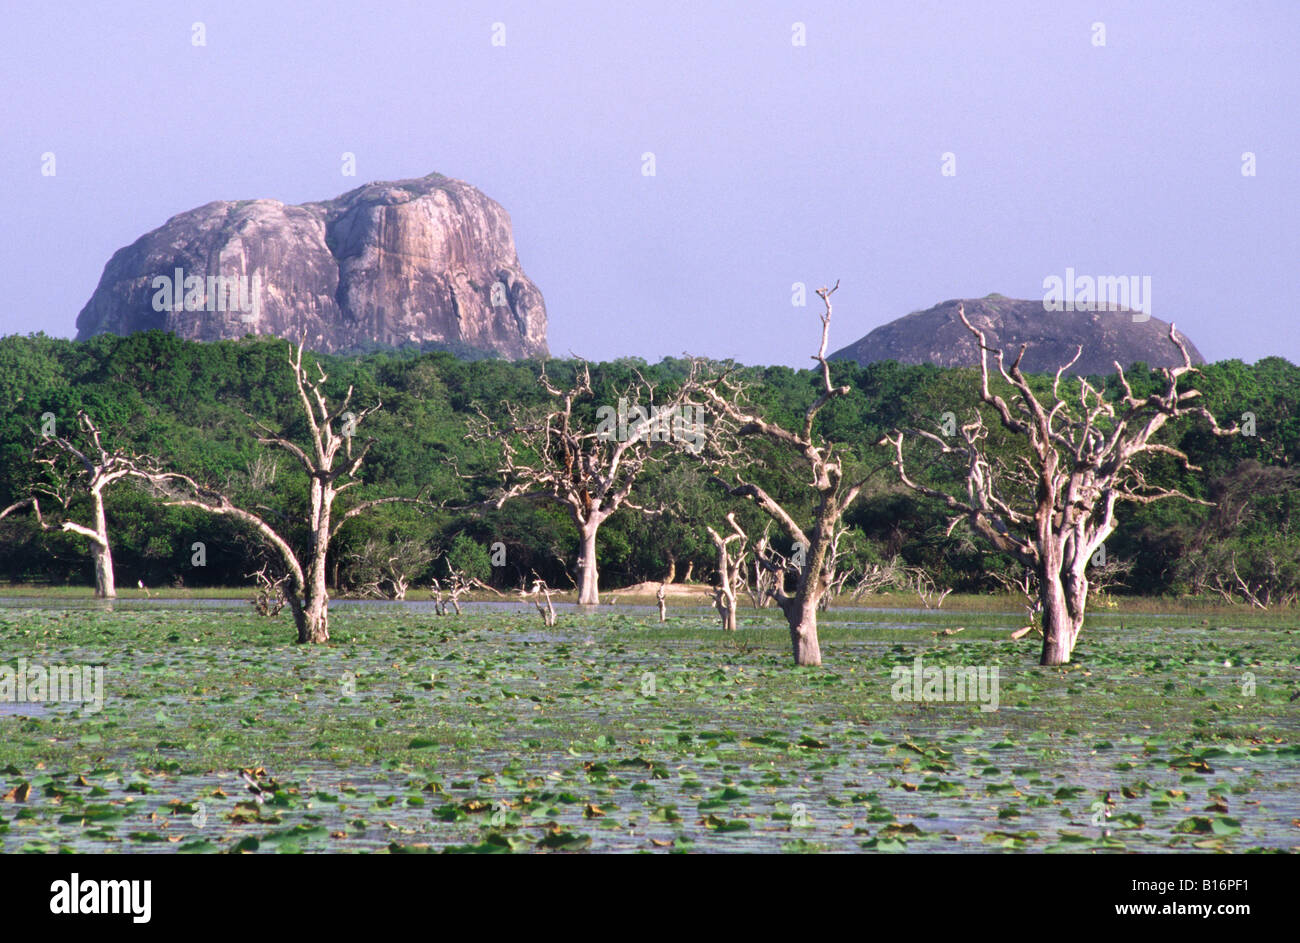 Lake with dead trees. Yala West National Park (Ruhuna), Sri lanka. - Stock Image